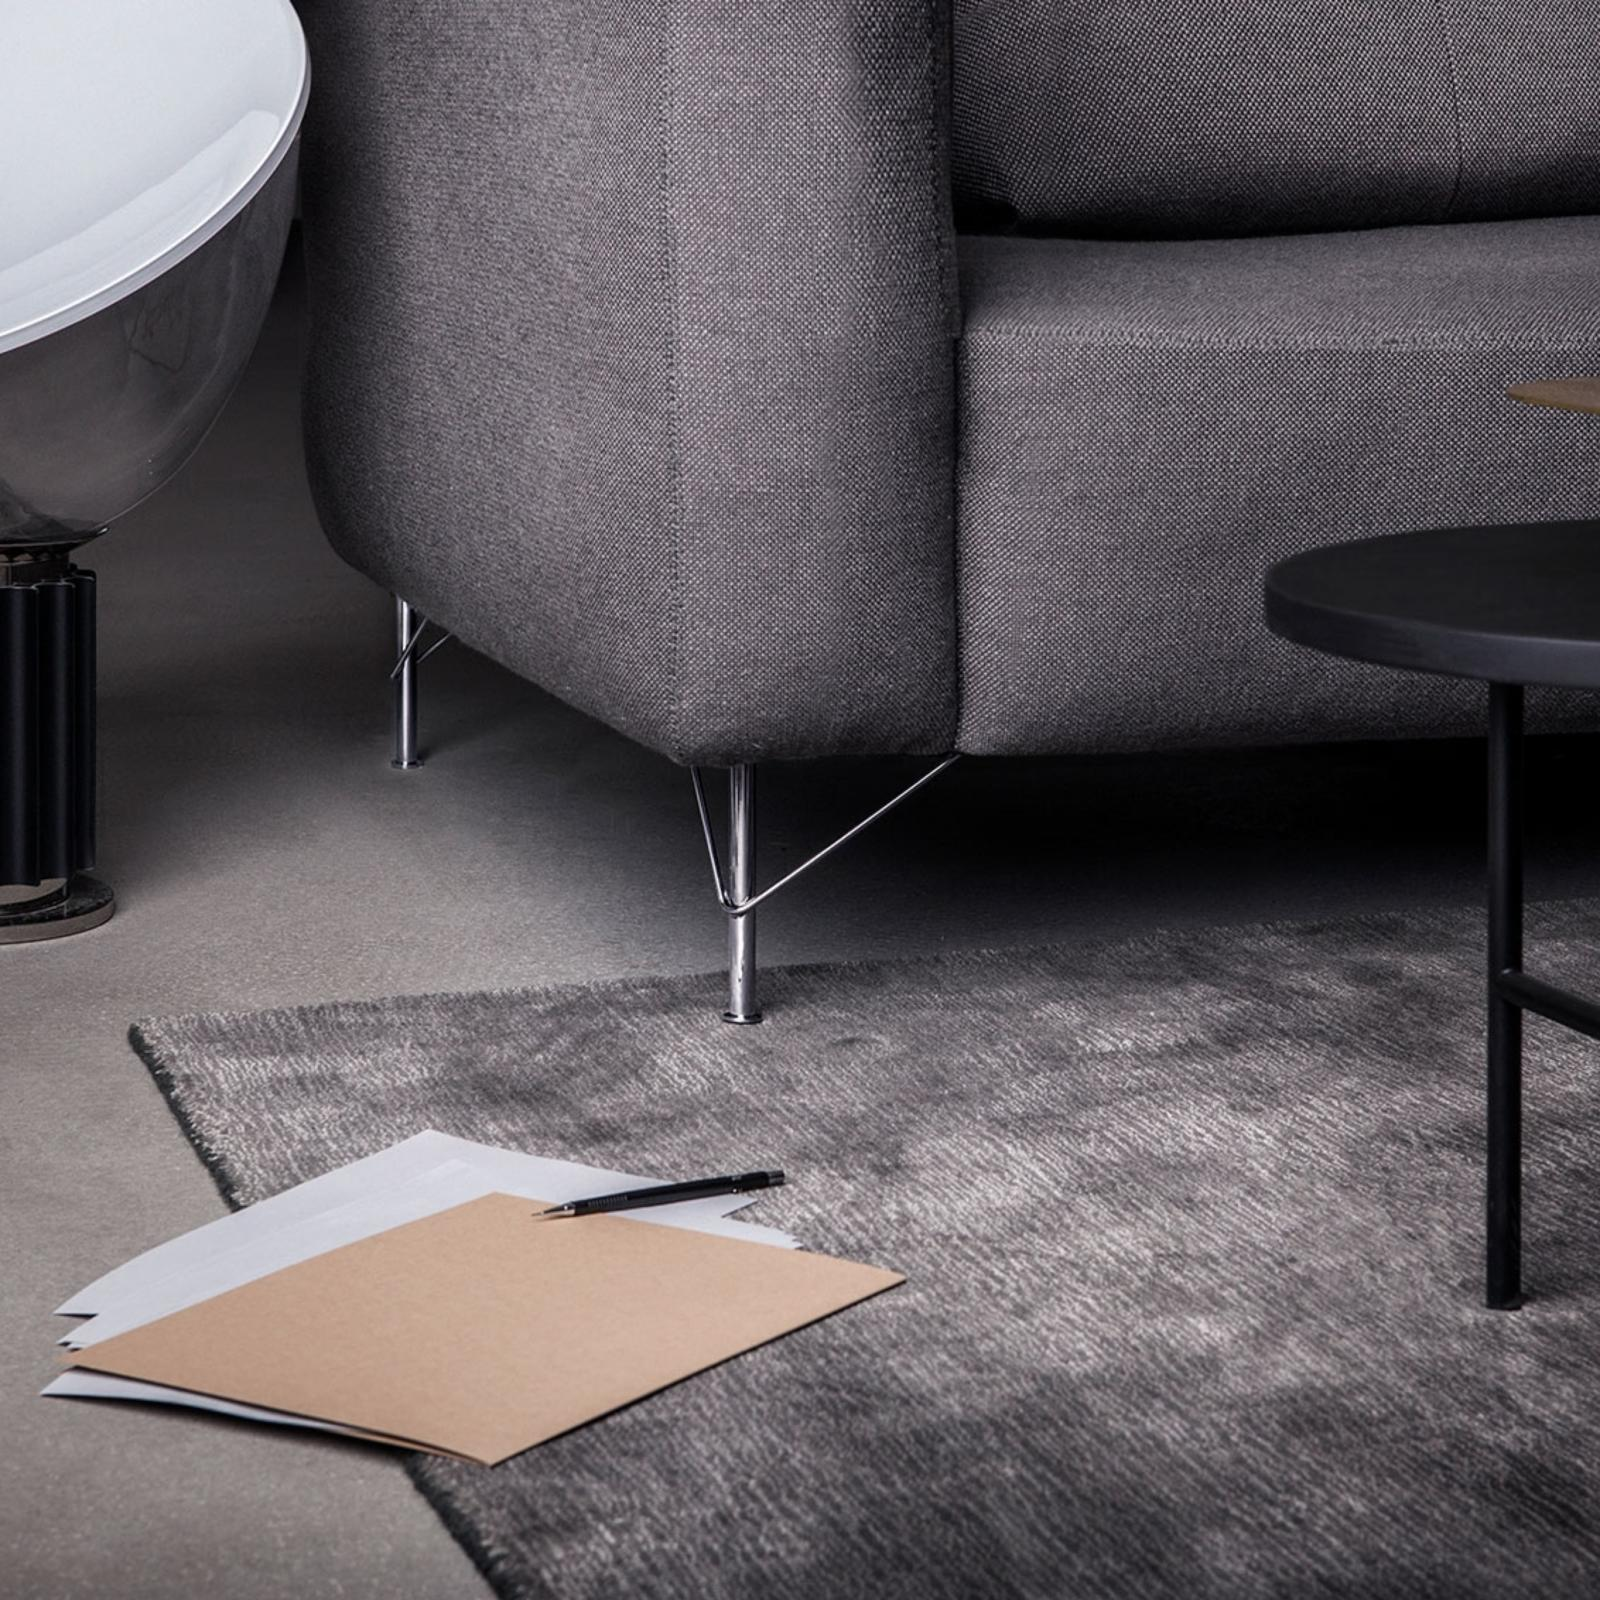 Uncluttered sofa legs in shiny metal, designed by Superfront